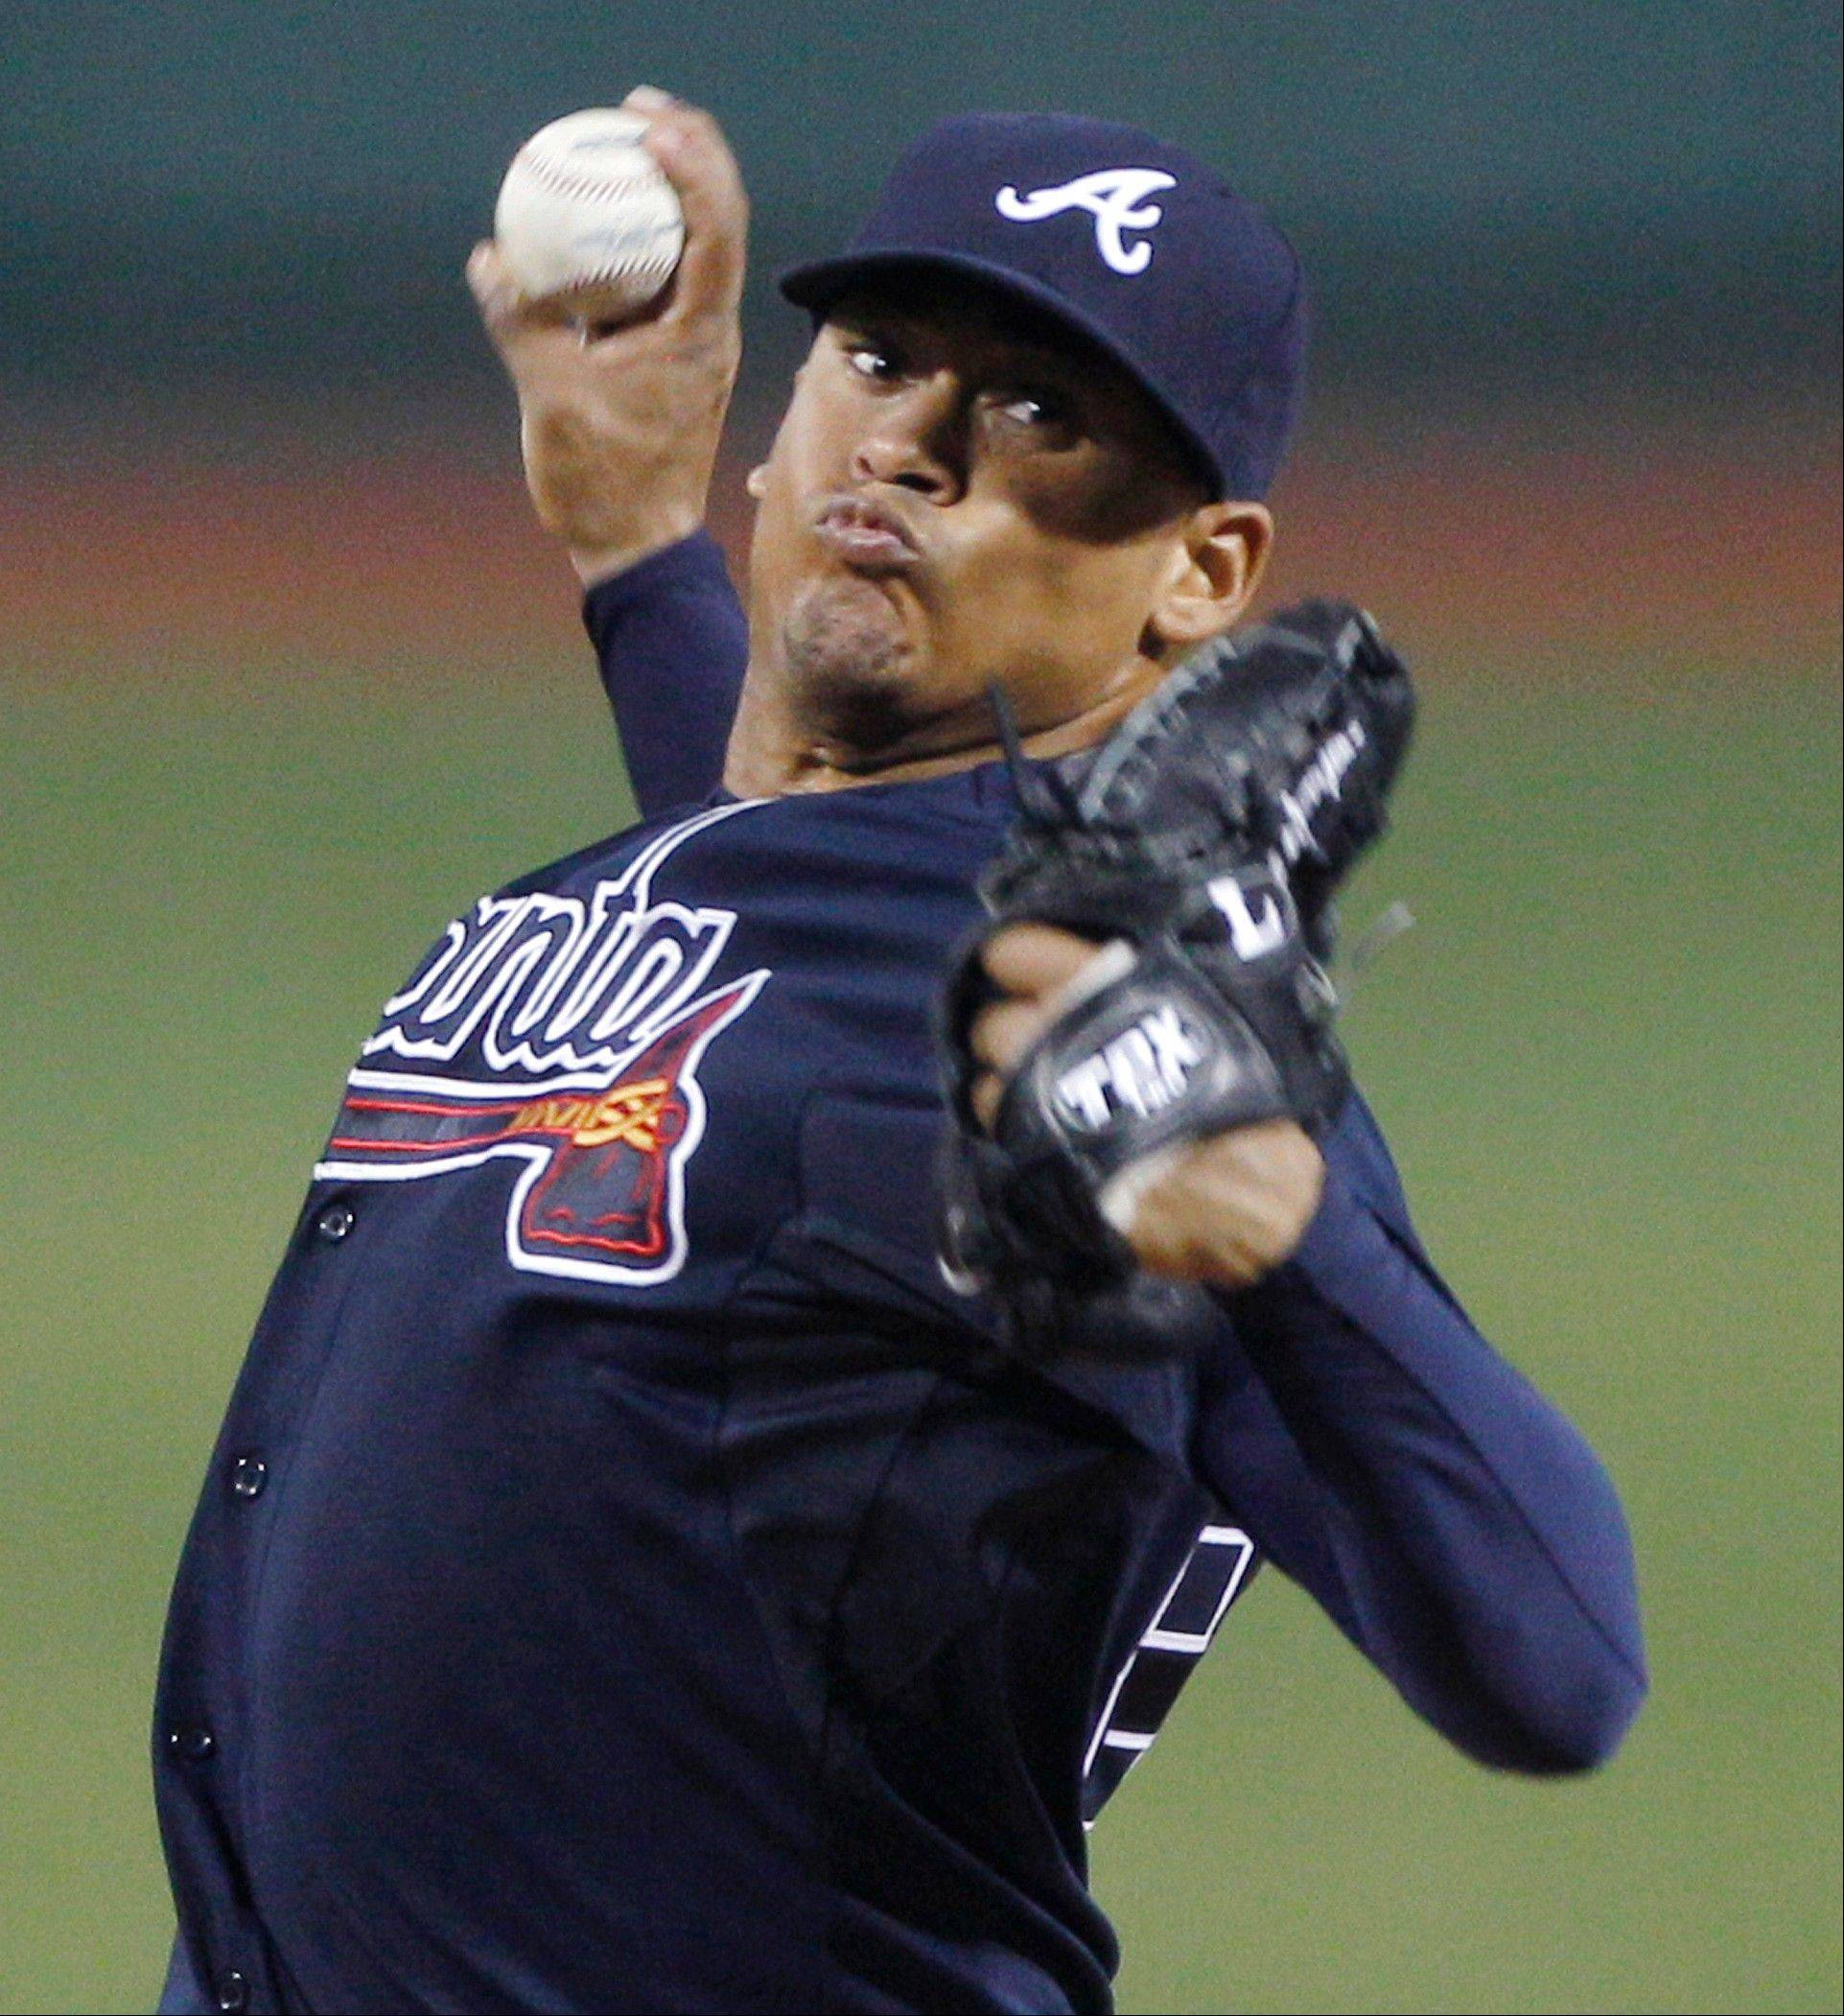 Atlanta Braves starter Jair Jurrjens struck out four against the Red Sox Friday in Boston.